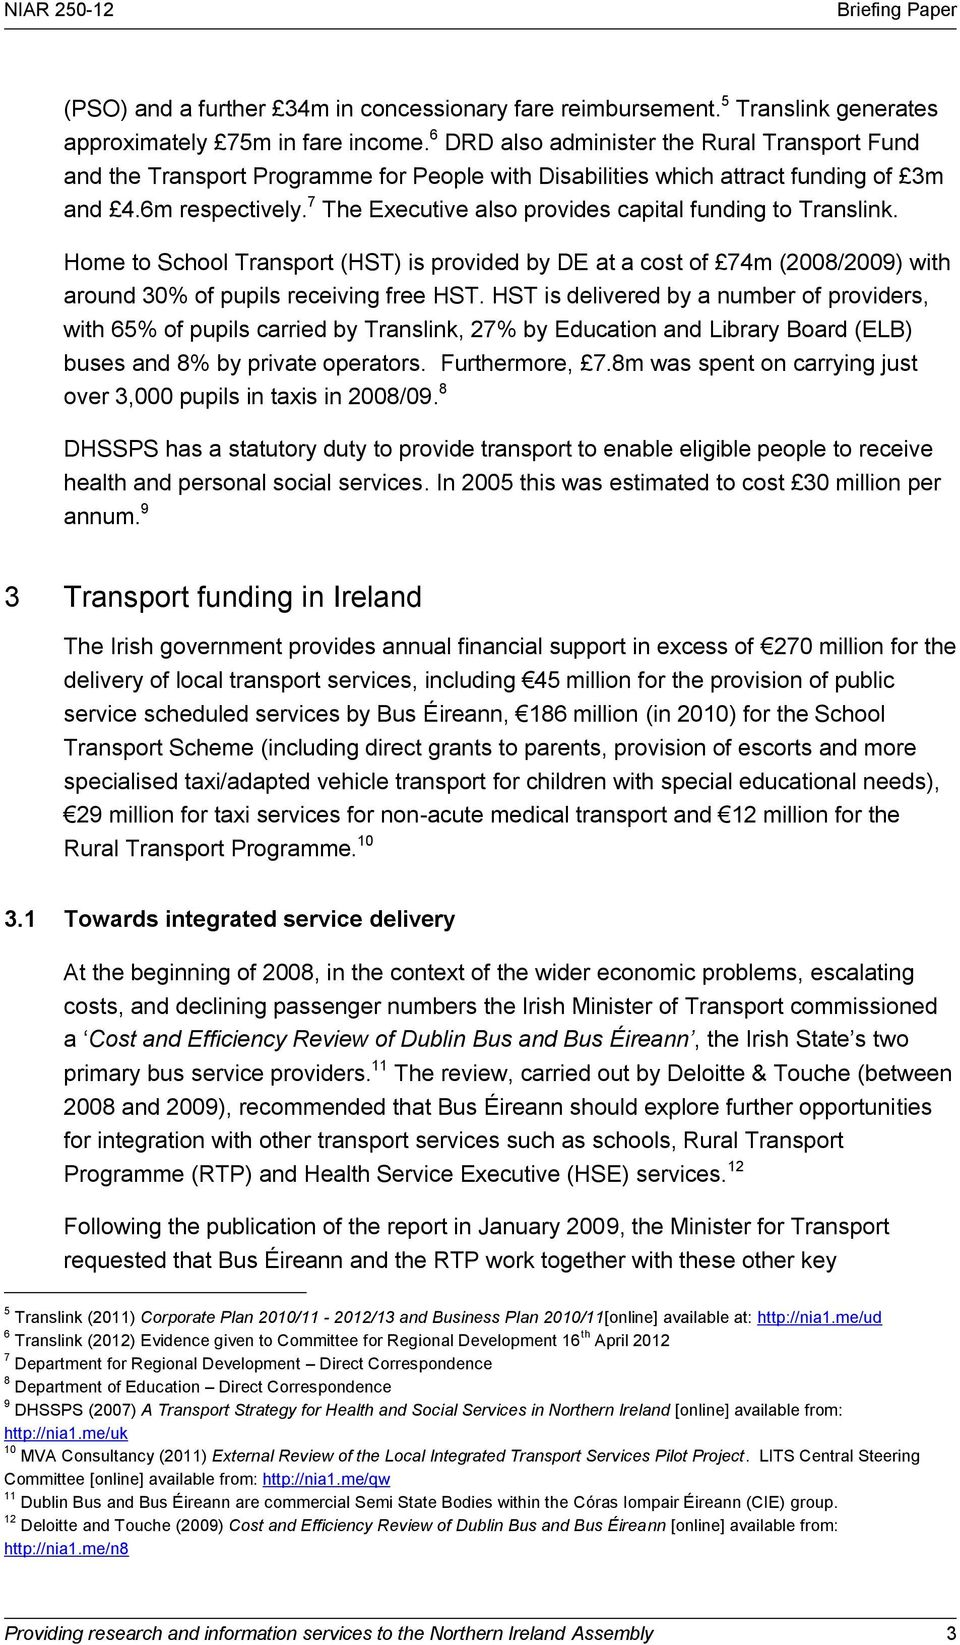 7 The Executive also provides capital funding to Translink. Home to School Transport (HST) is provided by DE at a cost of 74m (2008/2009) with around 30% of pupils receiving free HST.